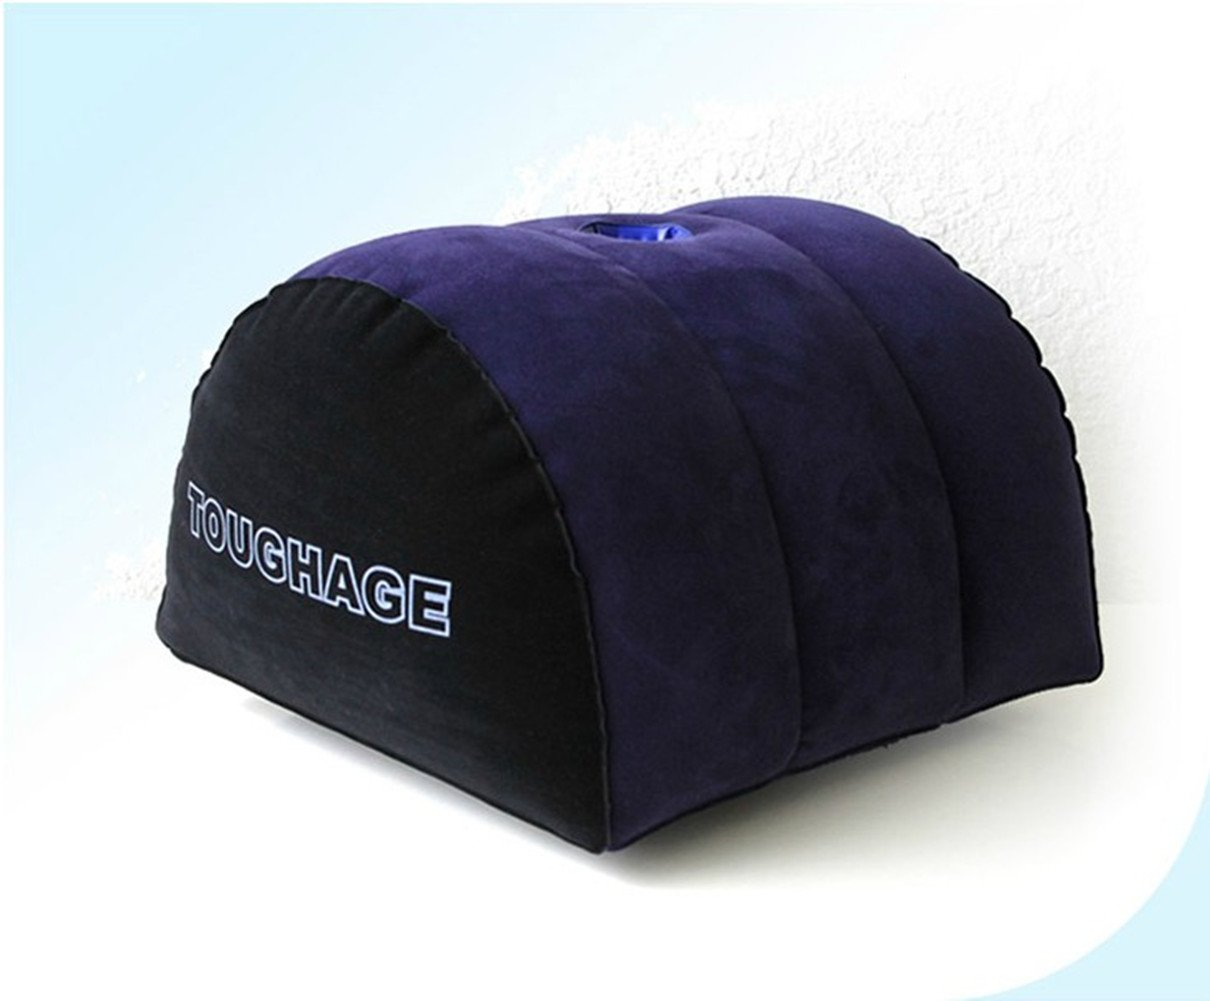 TOUGHAGE Massage Air inflatable Pillow Bounce Cushion by Inflatable Toughage position pillow PF3103